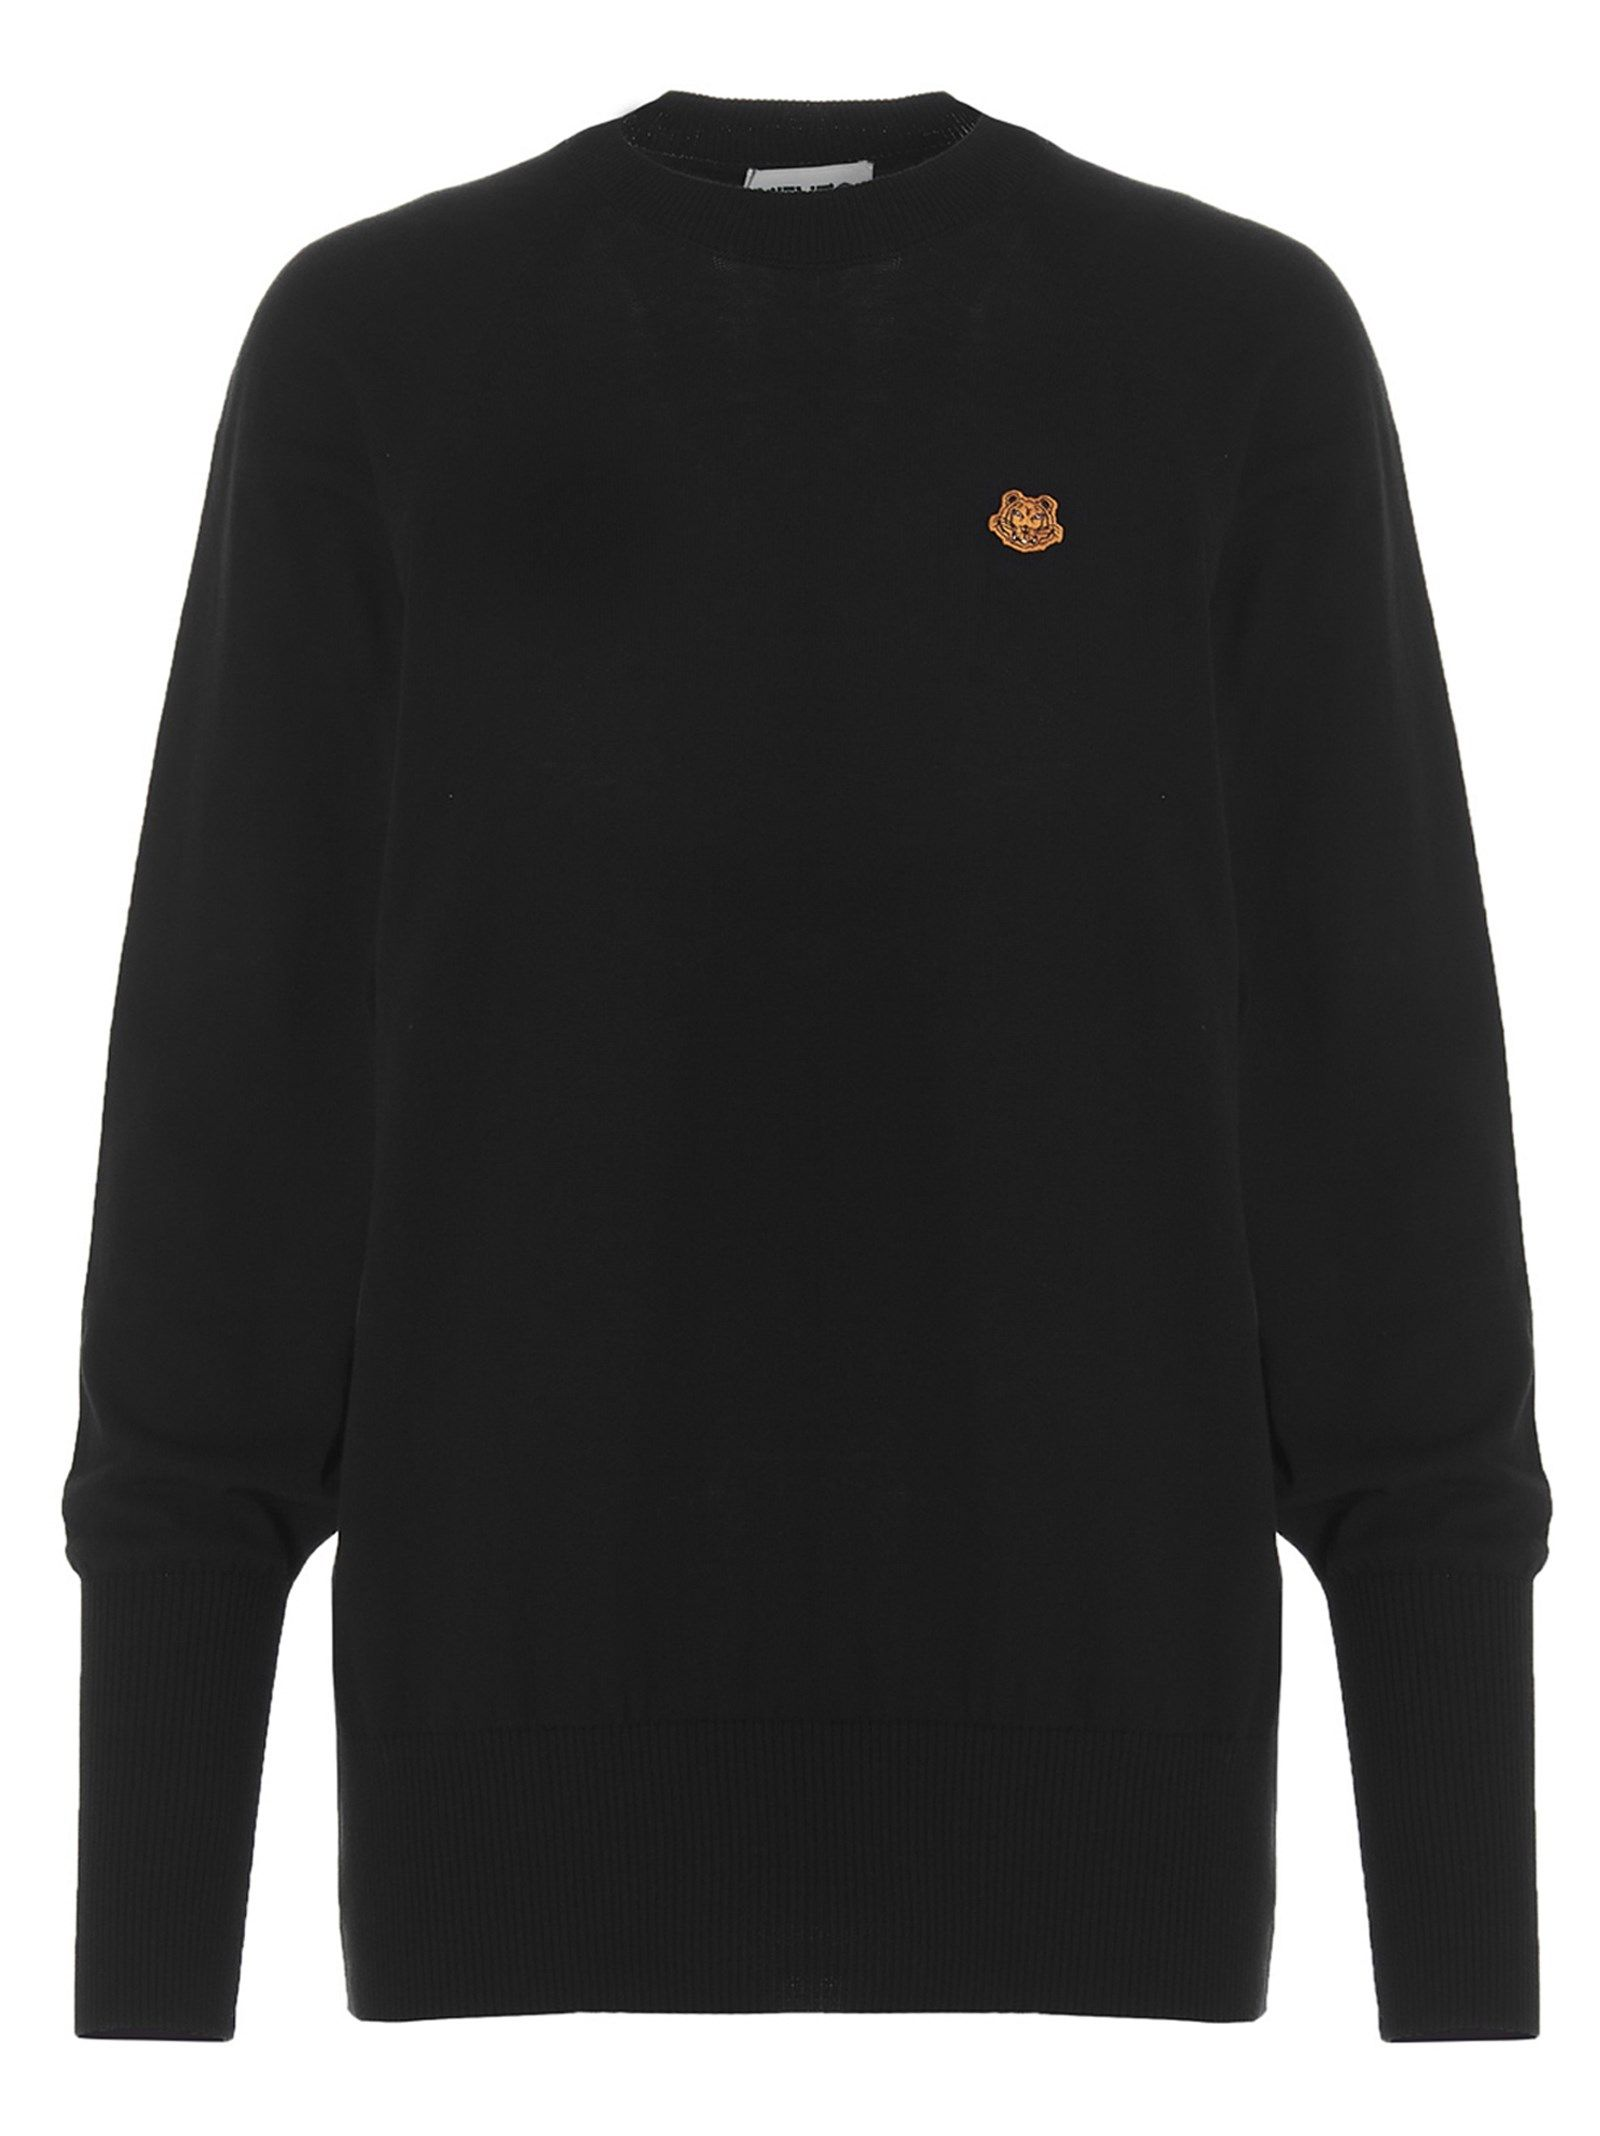 Kenzo KENZO WOMEN'S BLACK COTTON SWEATER